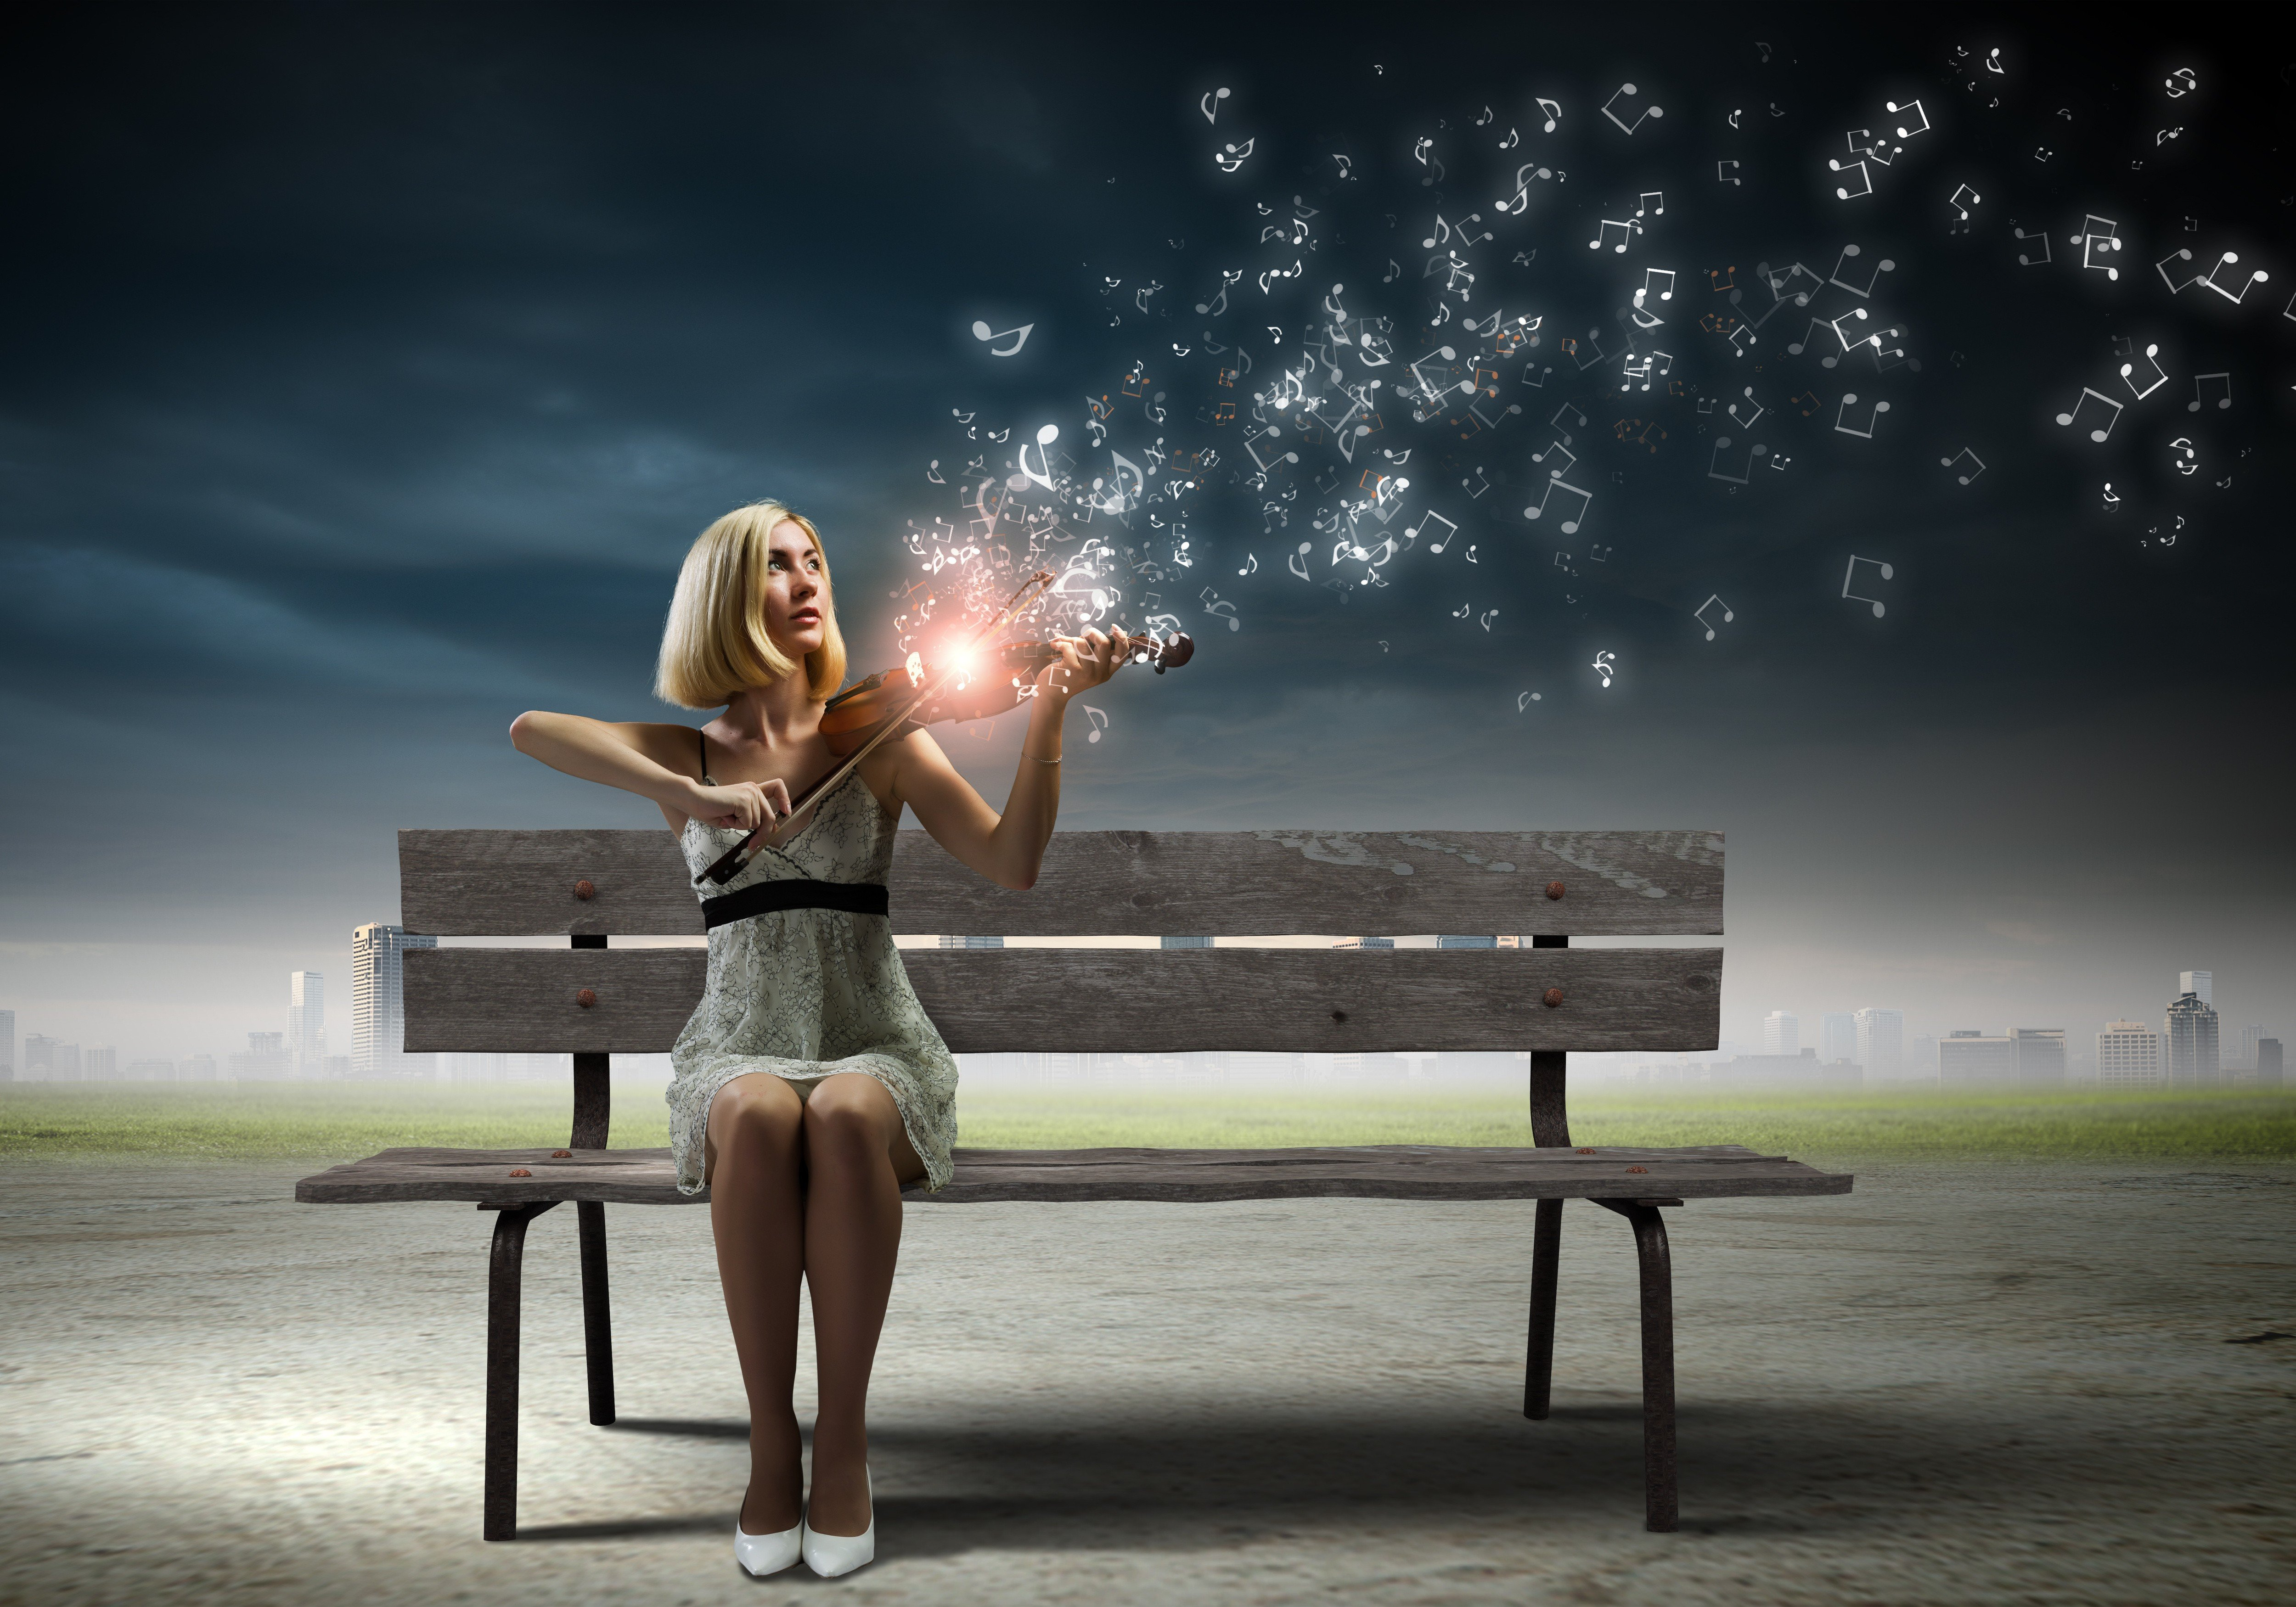 Women Model Blonde Long Hair Photo Manipulation Digital Art Sitting Bench Playing